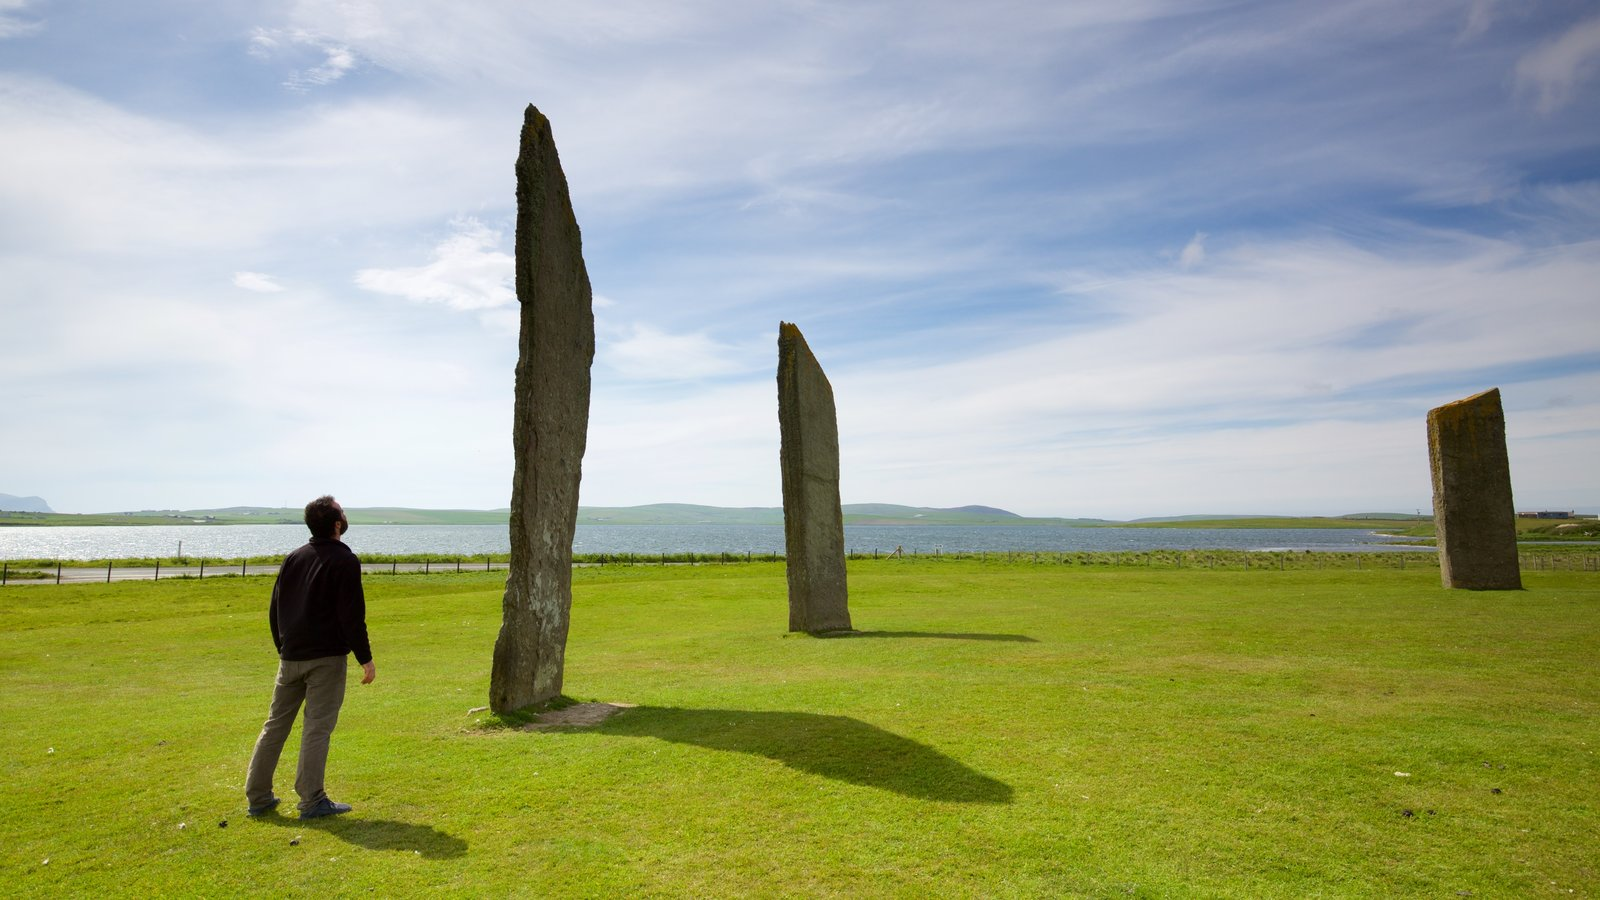 Standing Stones of Stenness showing tranquil scenes, a monument and general coastal views